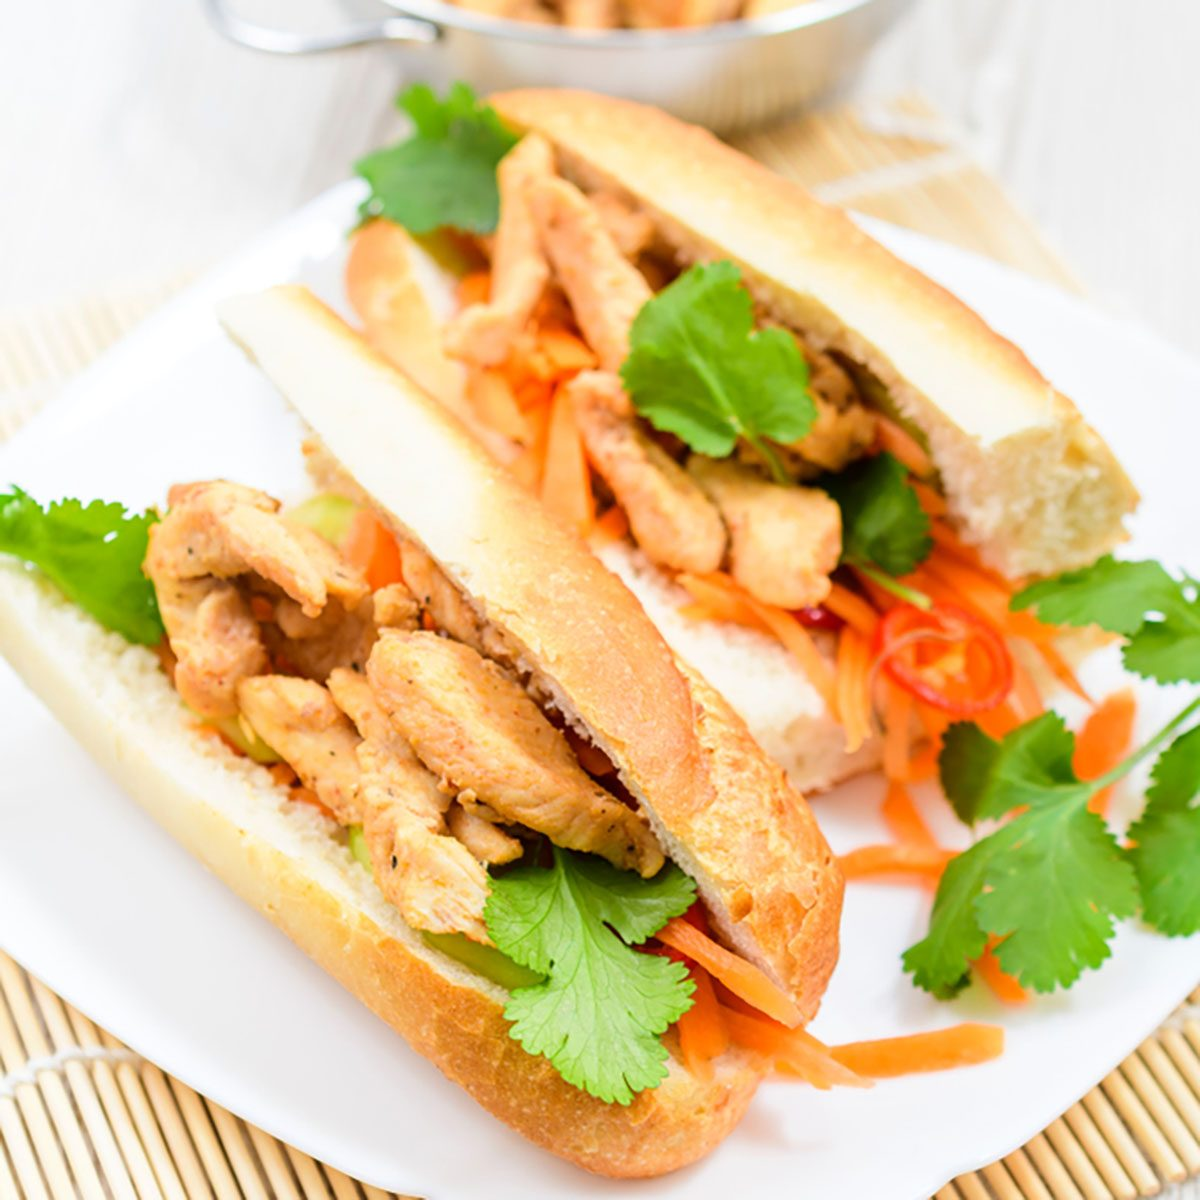 Grilled Vietnamese Chicken Sandwiches (bánh mì)